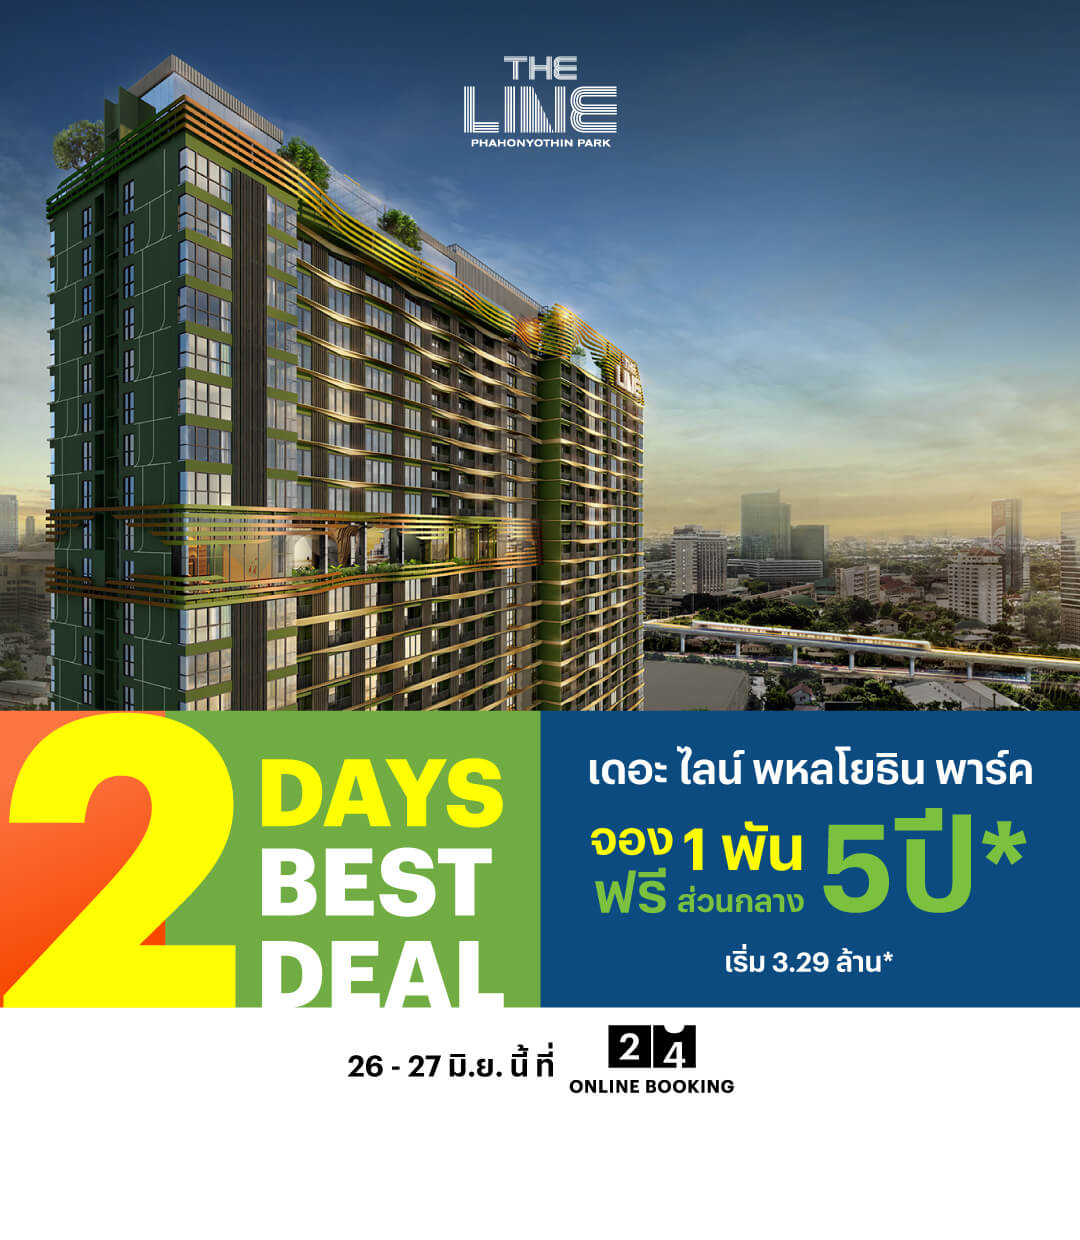 THE LINE PHP_Online Booking Campaign